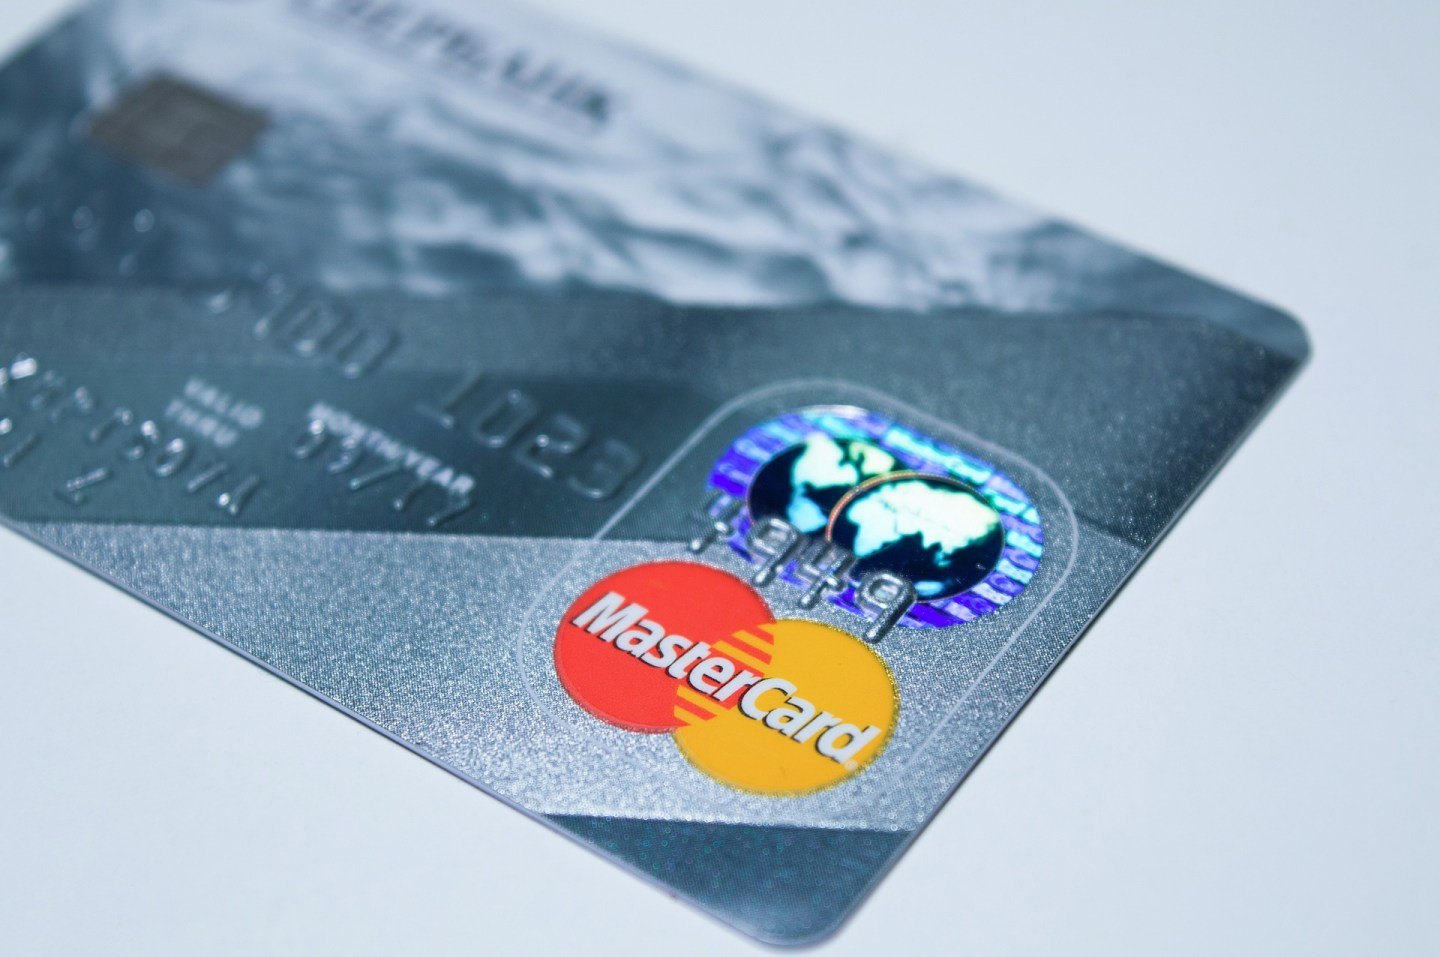 How to choose the best credit card to get rewards and use it wisely